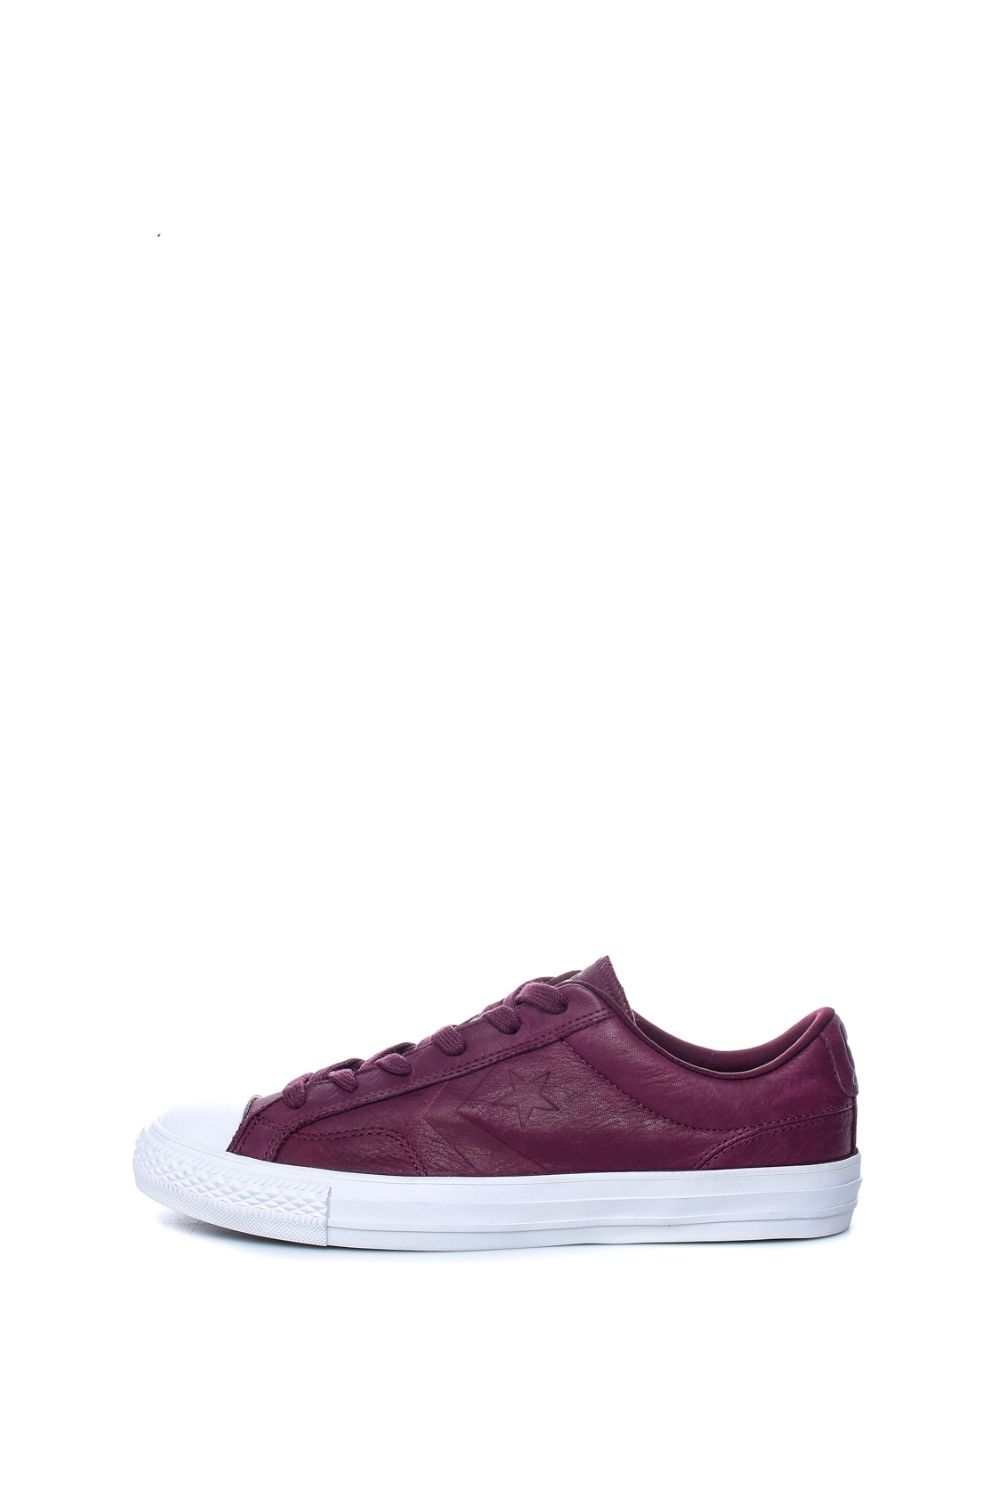 CONVERSE – Unisex sneakers CONVERSE Star Player Ox μπορντό μοβ